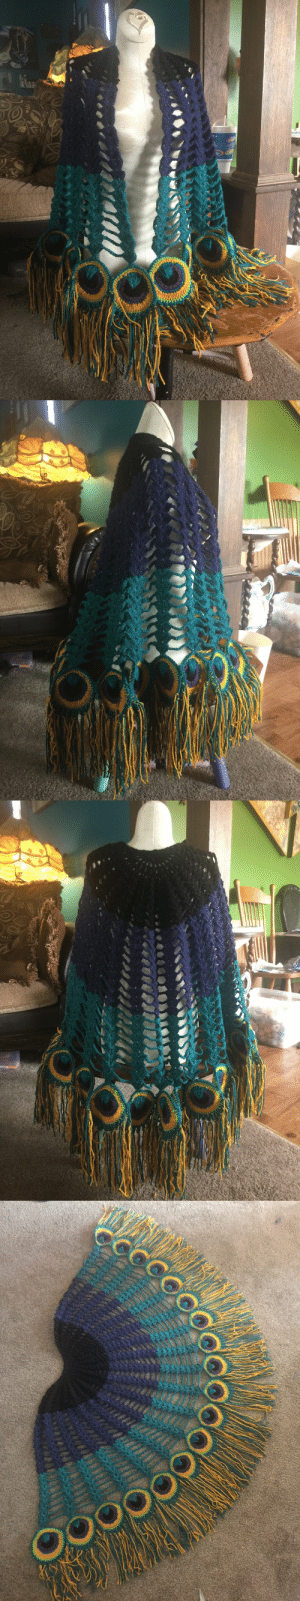 Tumblr, Blog, and Http: mamapluto: artgirldavis: Peacock shawl is finally assembled and complete  Paging @jadedfalling